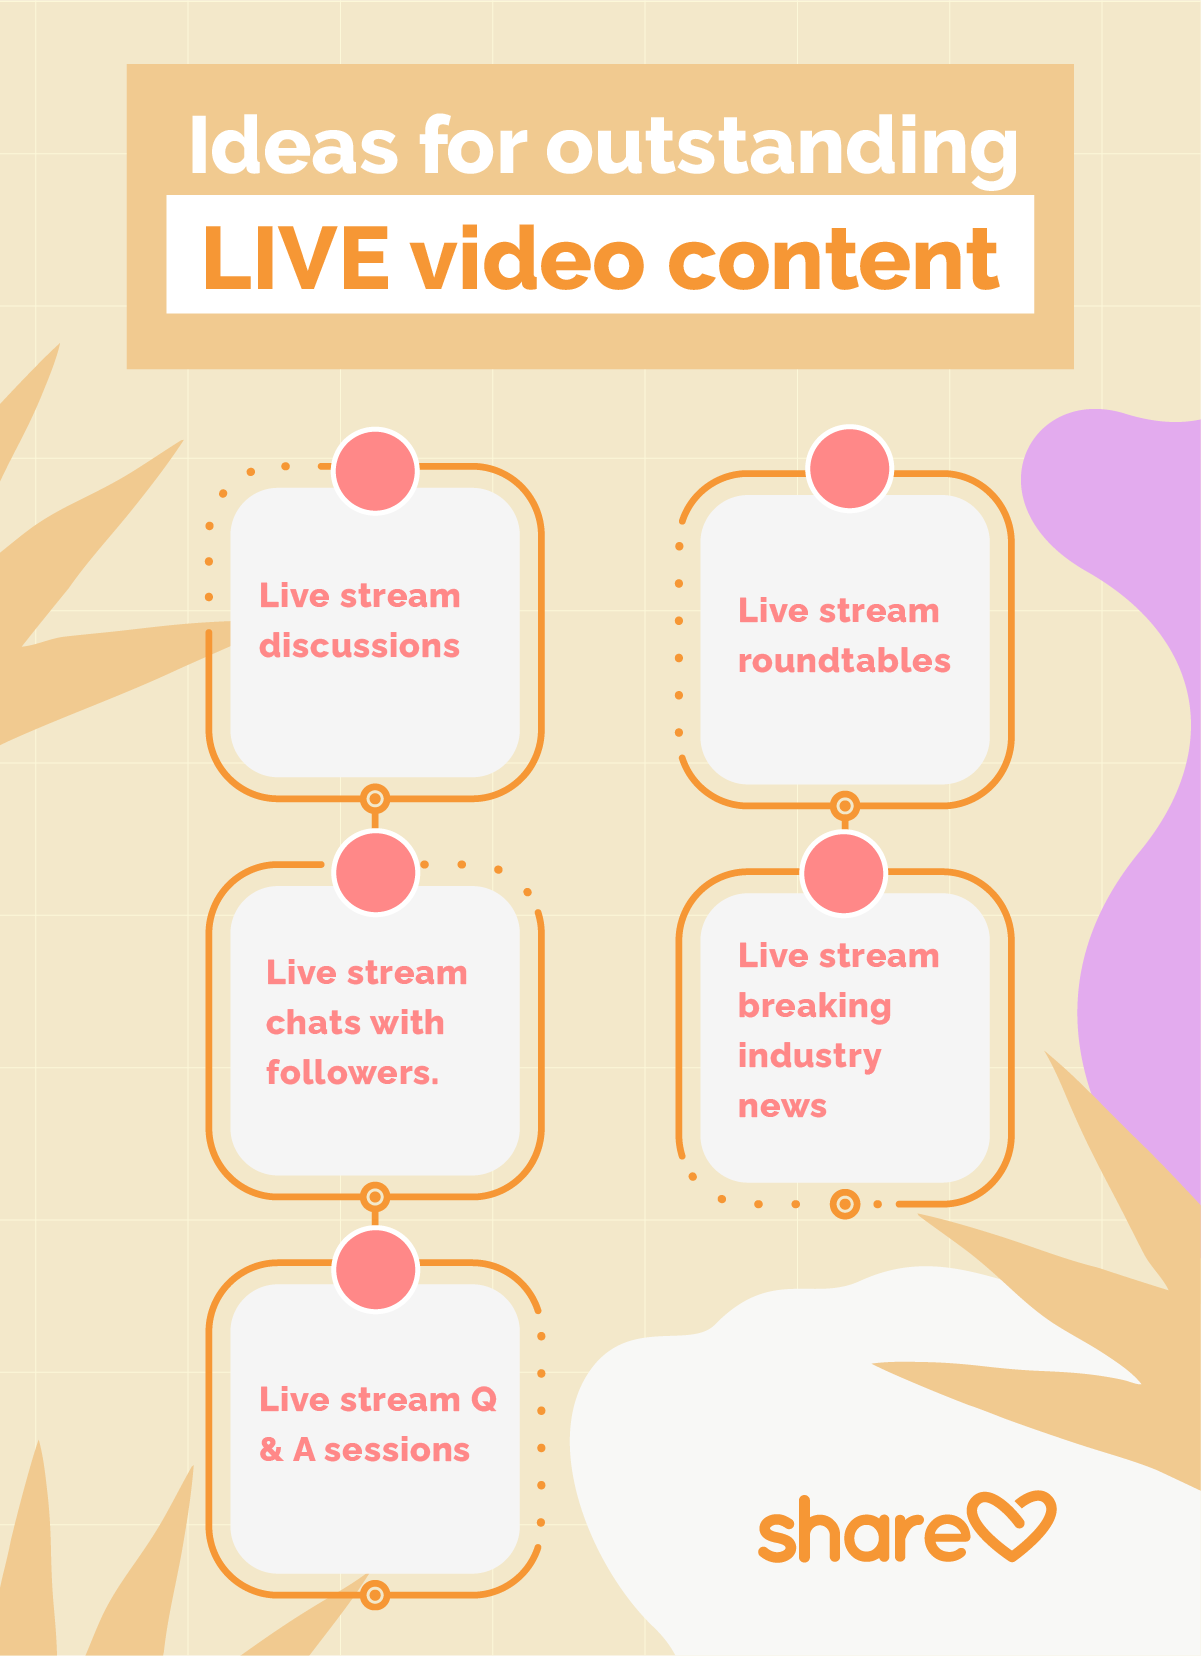 Ideas for outstanding LIVE video content